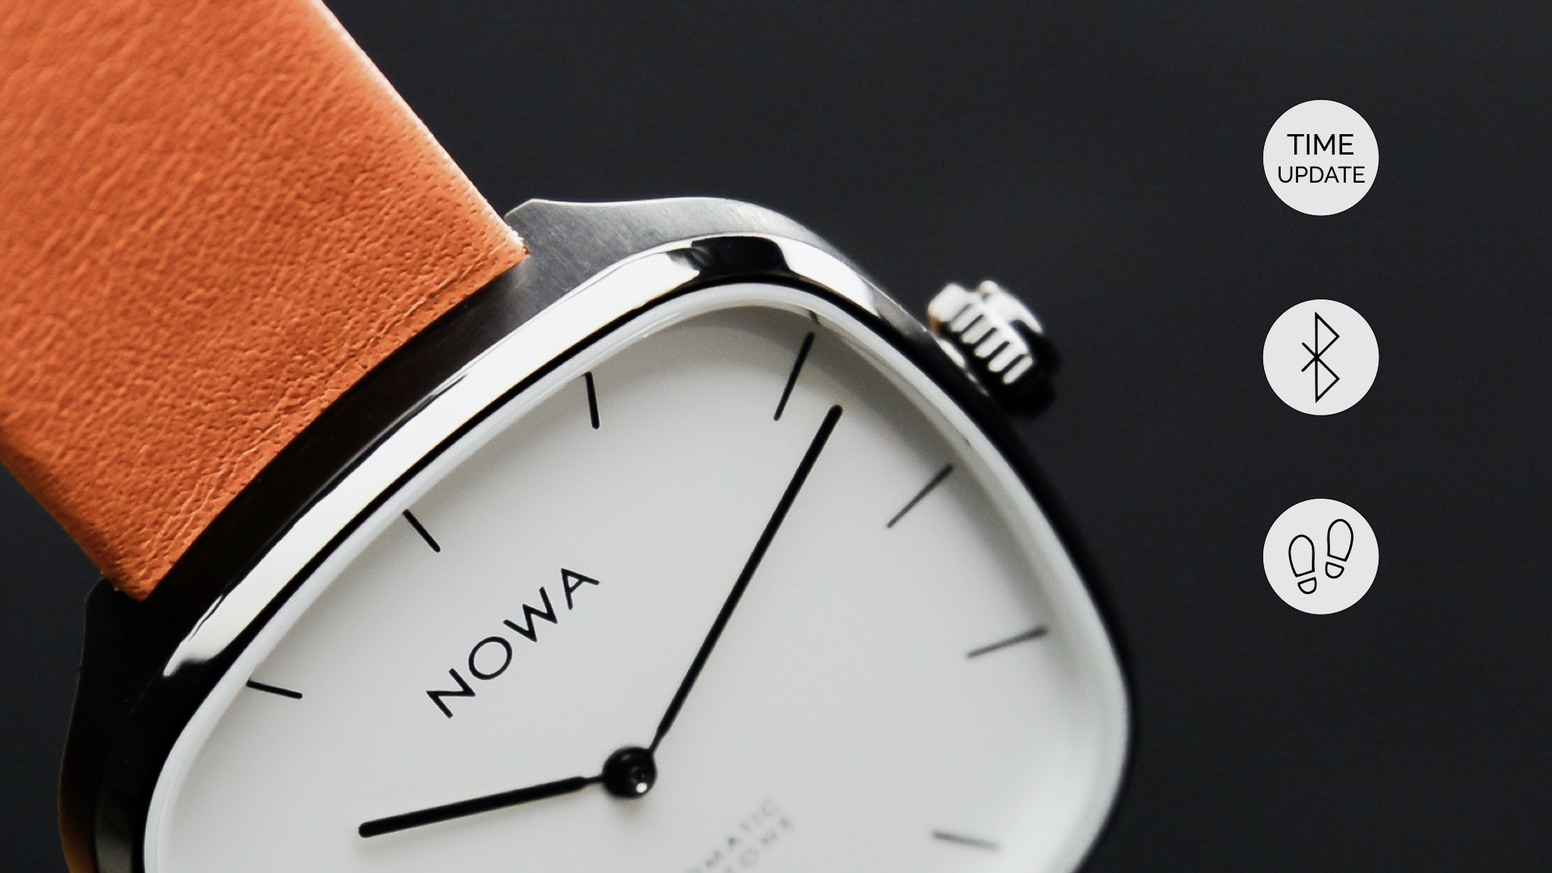 French Design meets Smart Technology - Exquisite and Exclusive. Creating the thinnest hybrid watches since 2016. 24 months warranty.